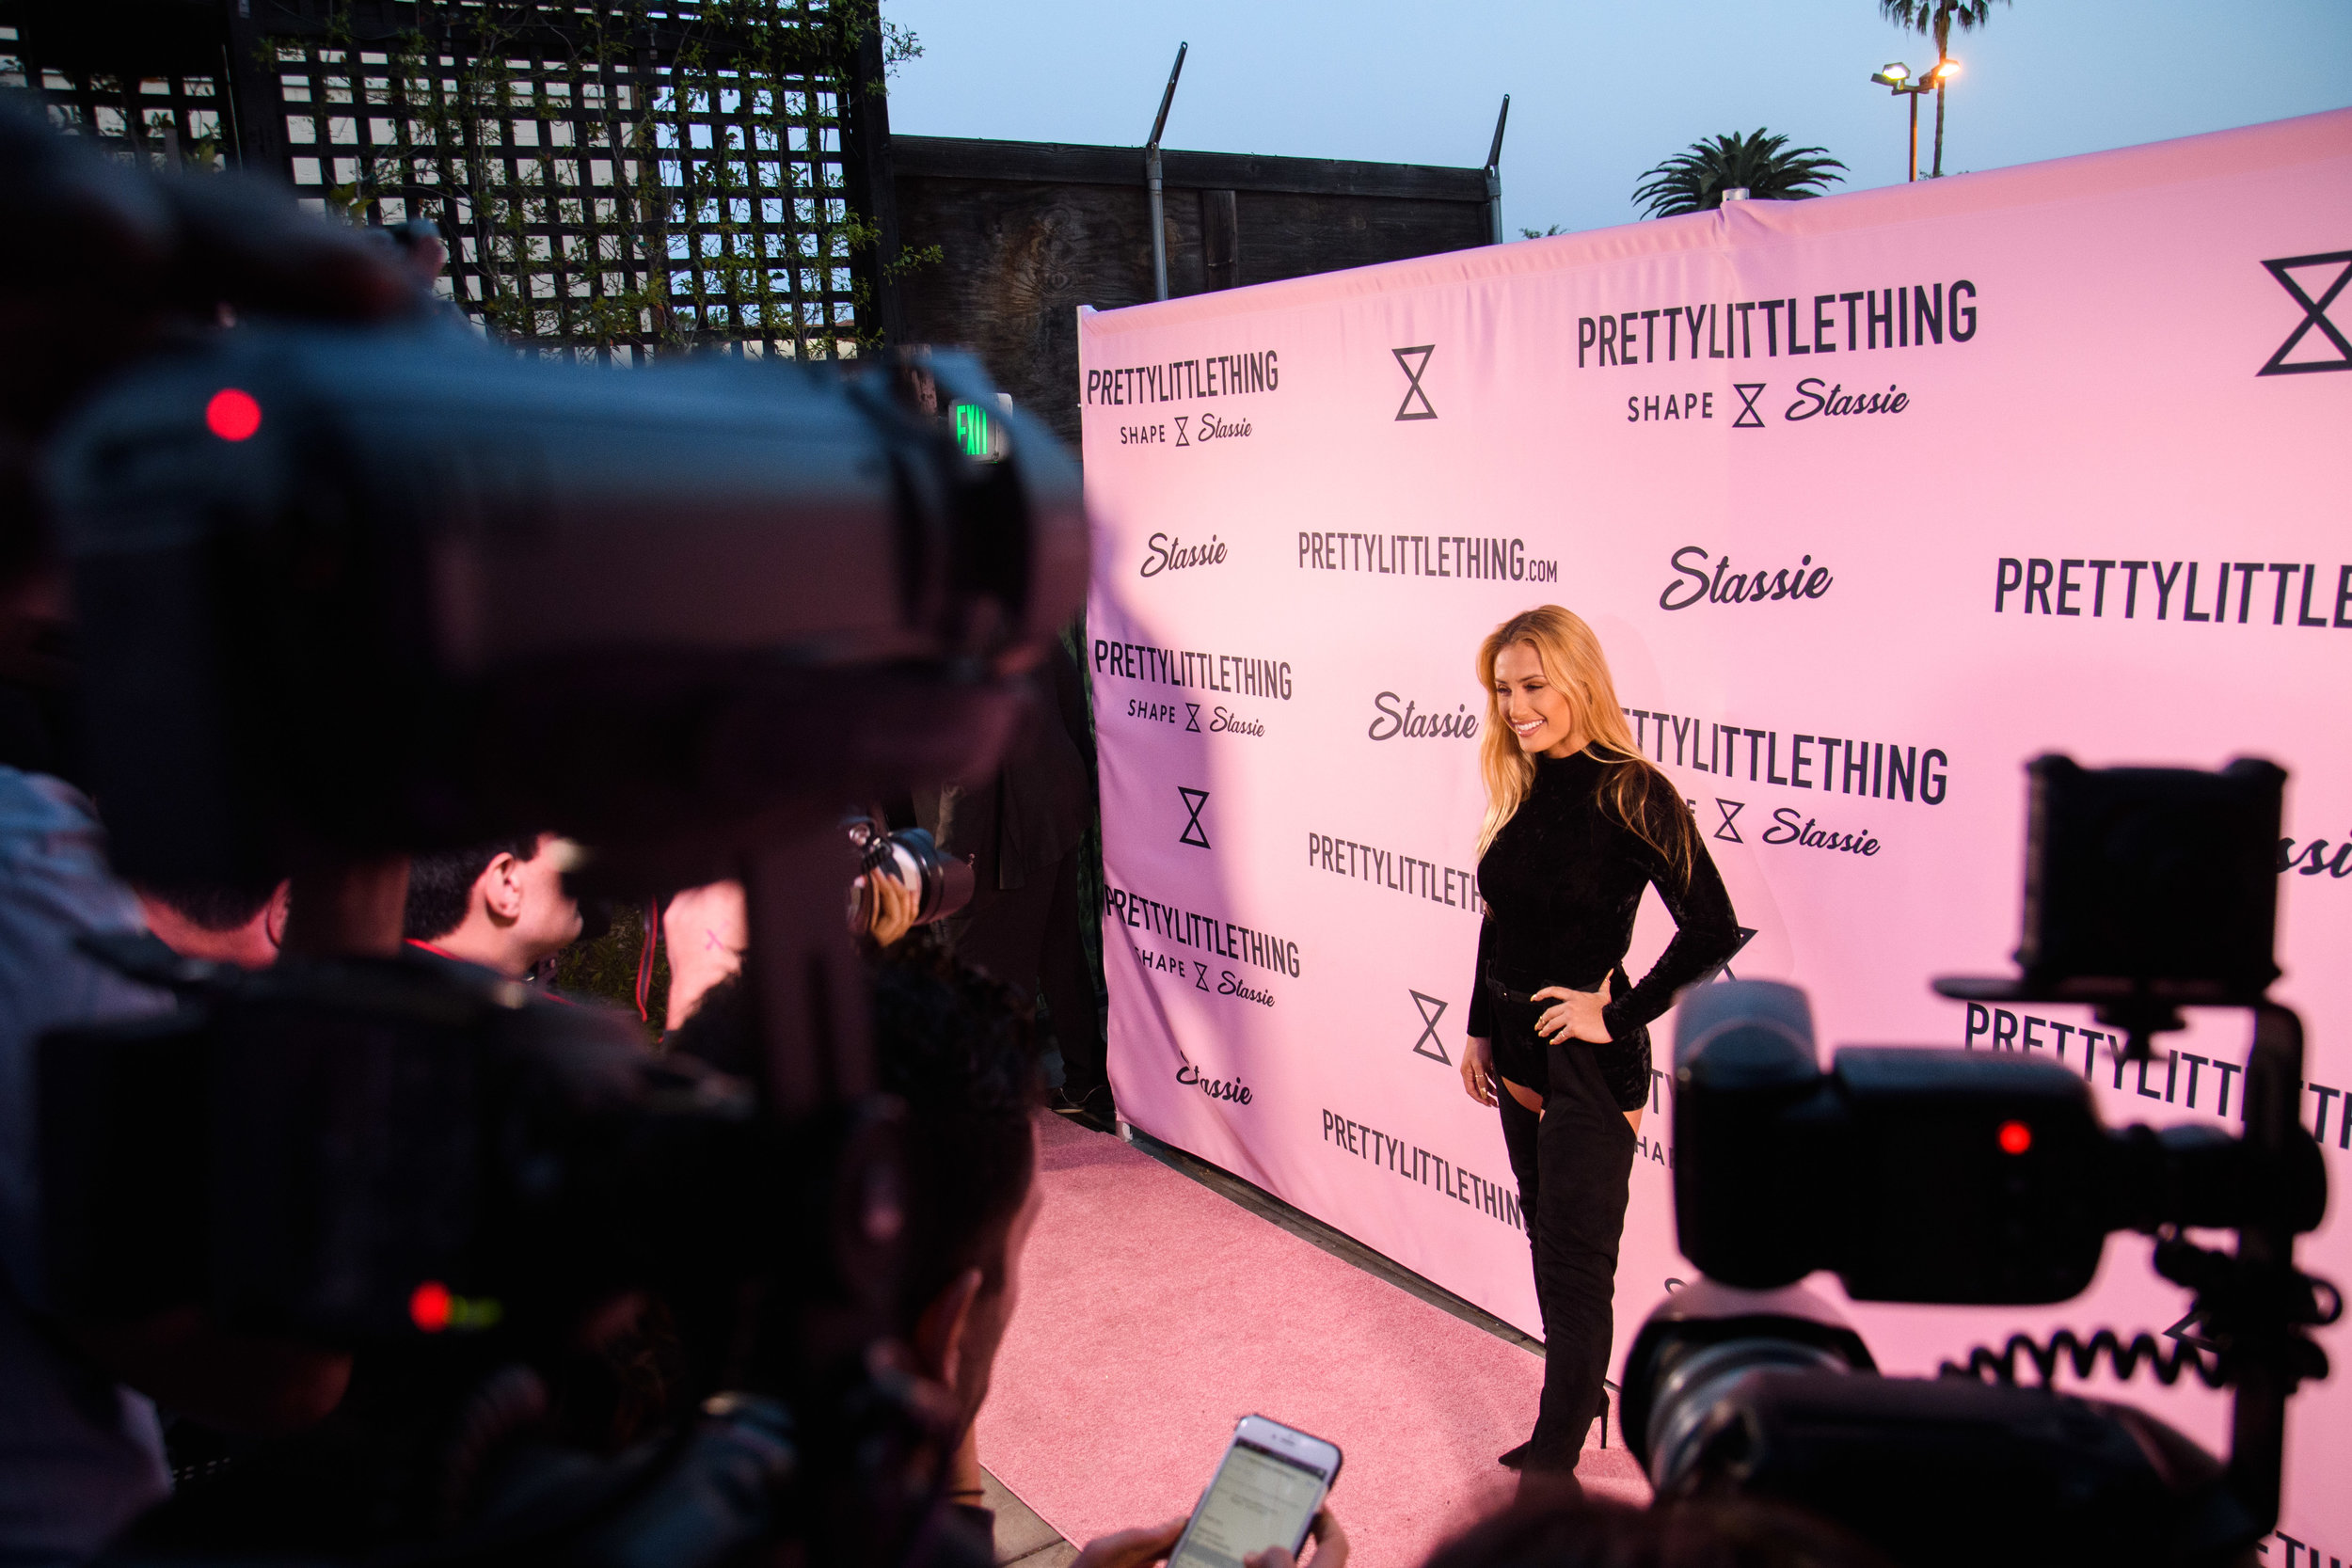 PrettyLittleThing New PLT Shape Collection with Stassie Celebrity Launch Party sneak peek of what step and repeat looks like with photographers with Montana Tucker.jpg